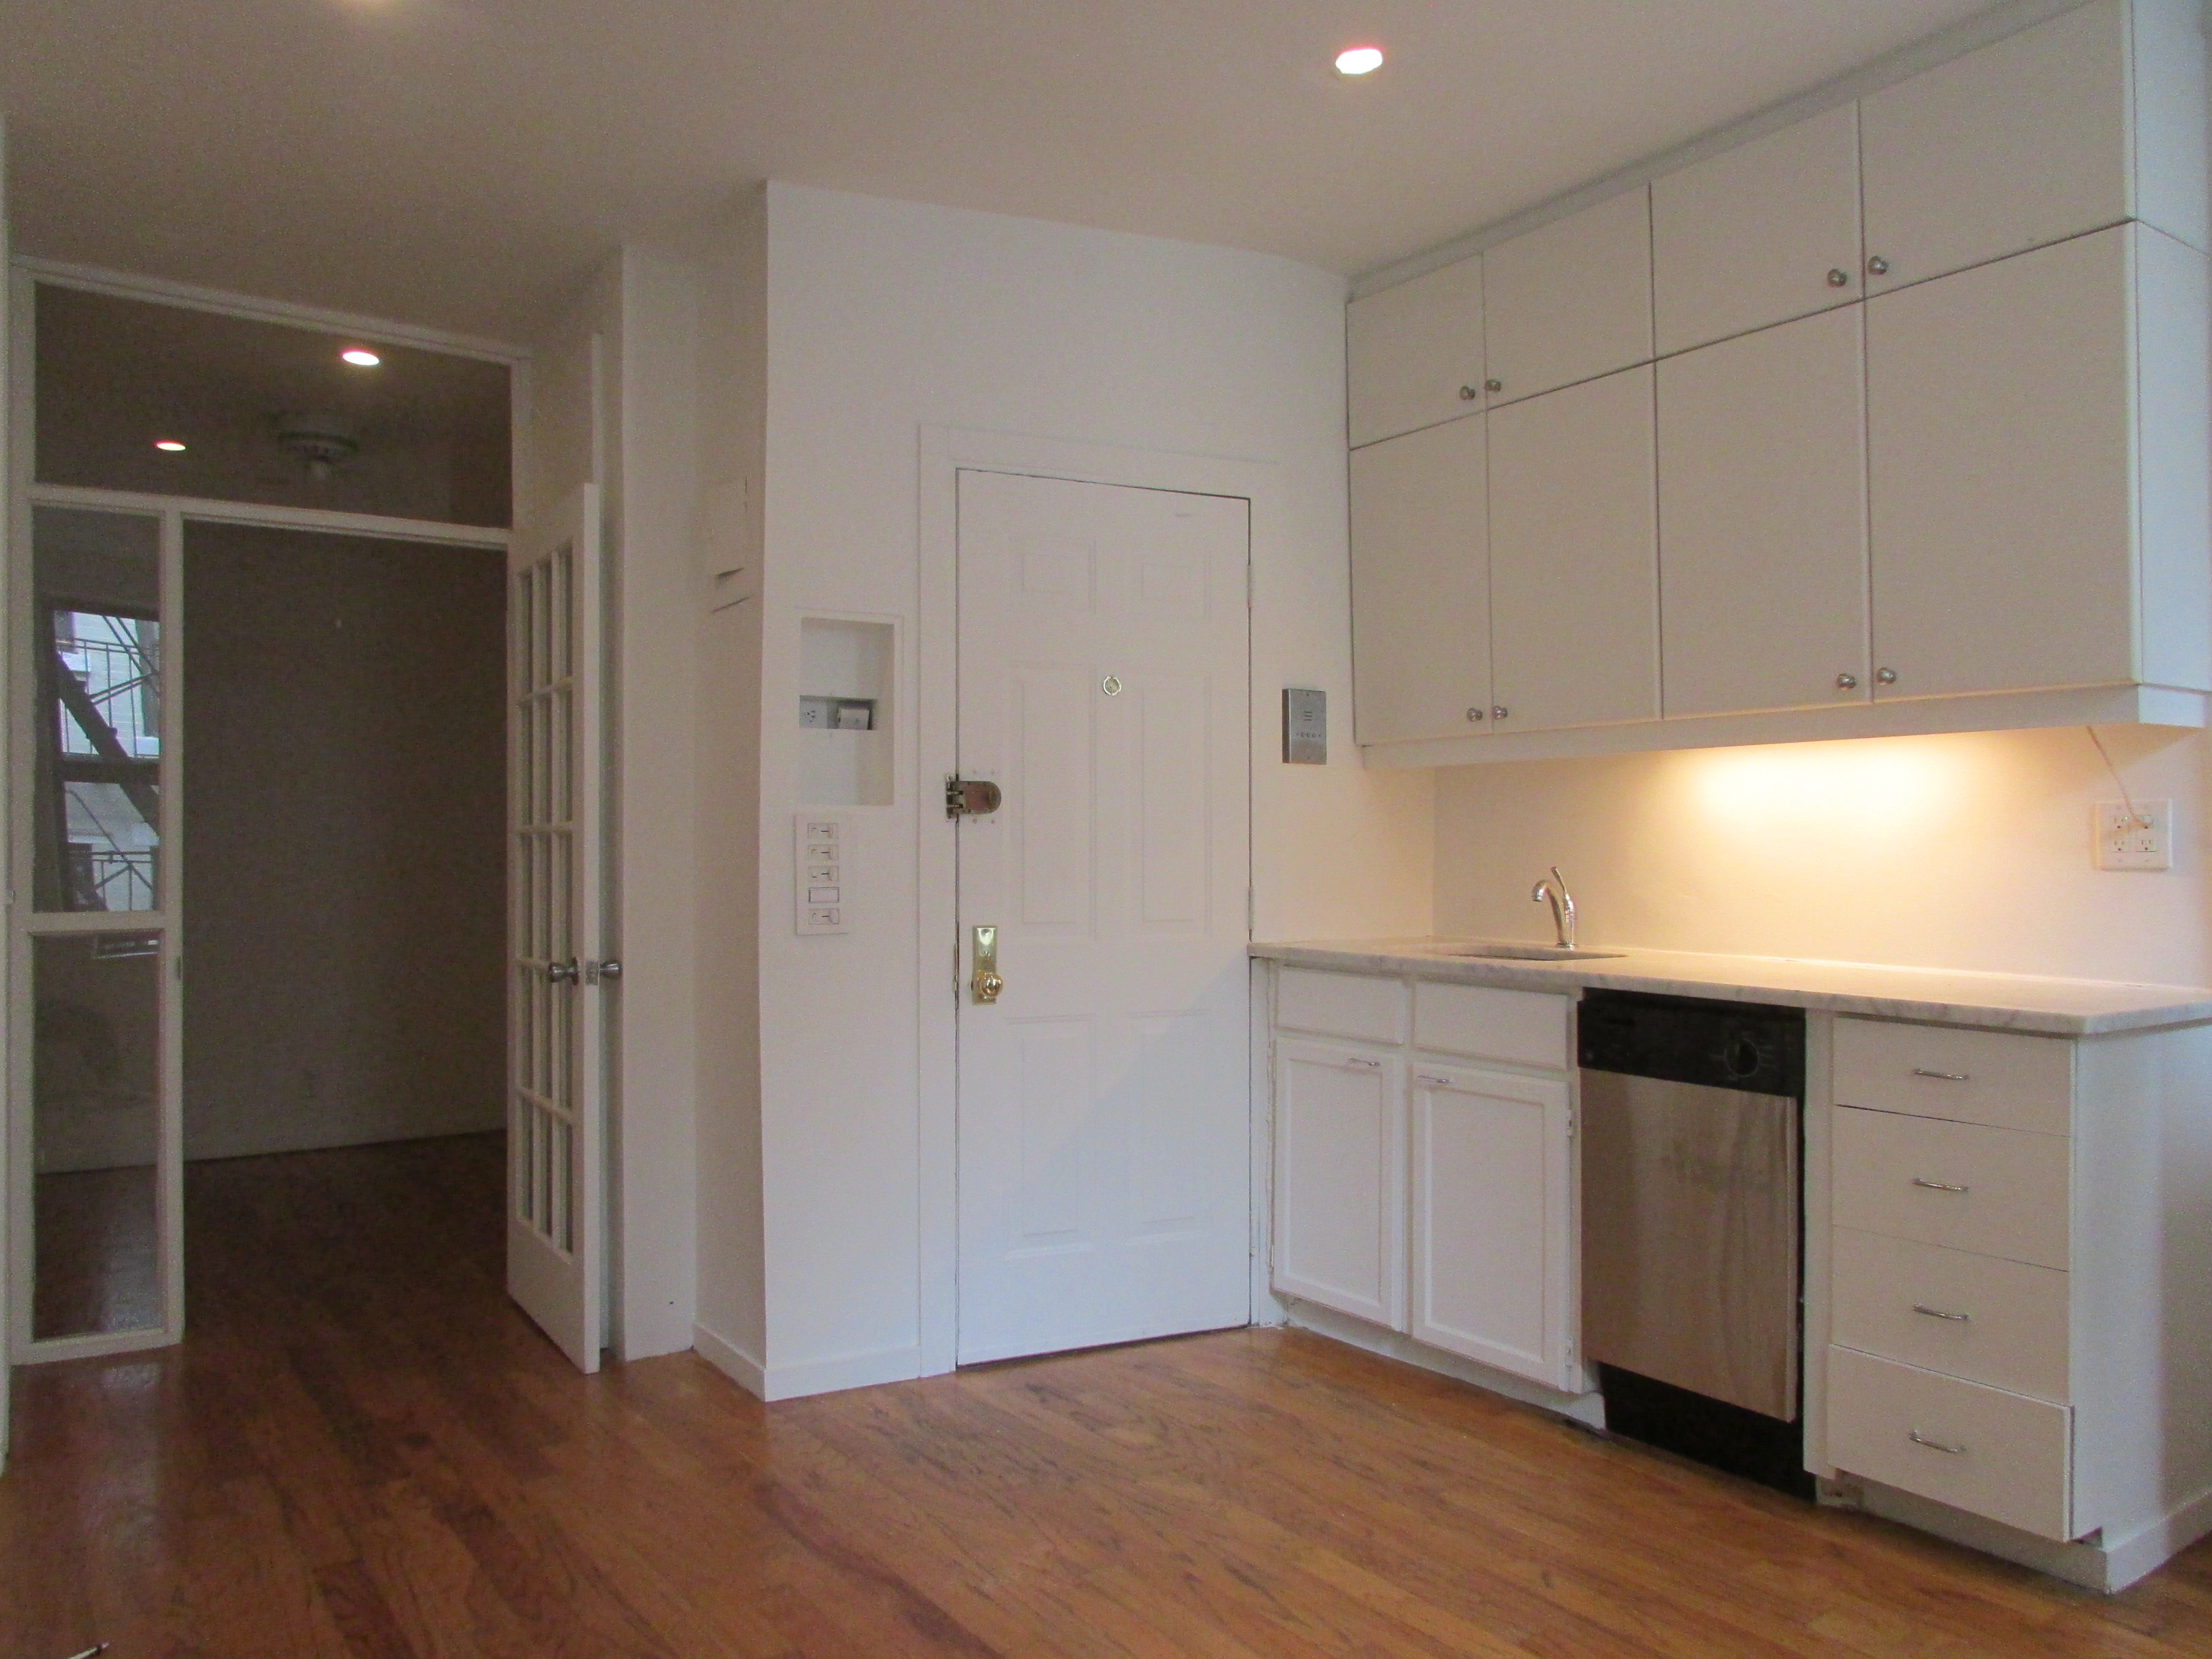 435 East 9th St, 3RE - East Village, New York